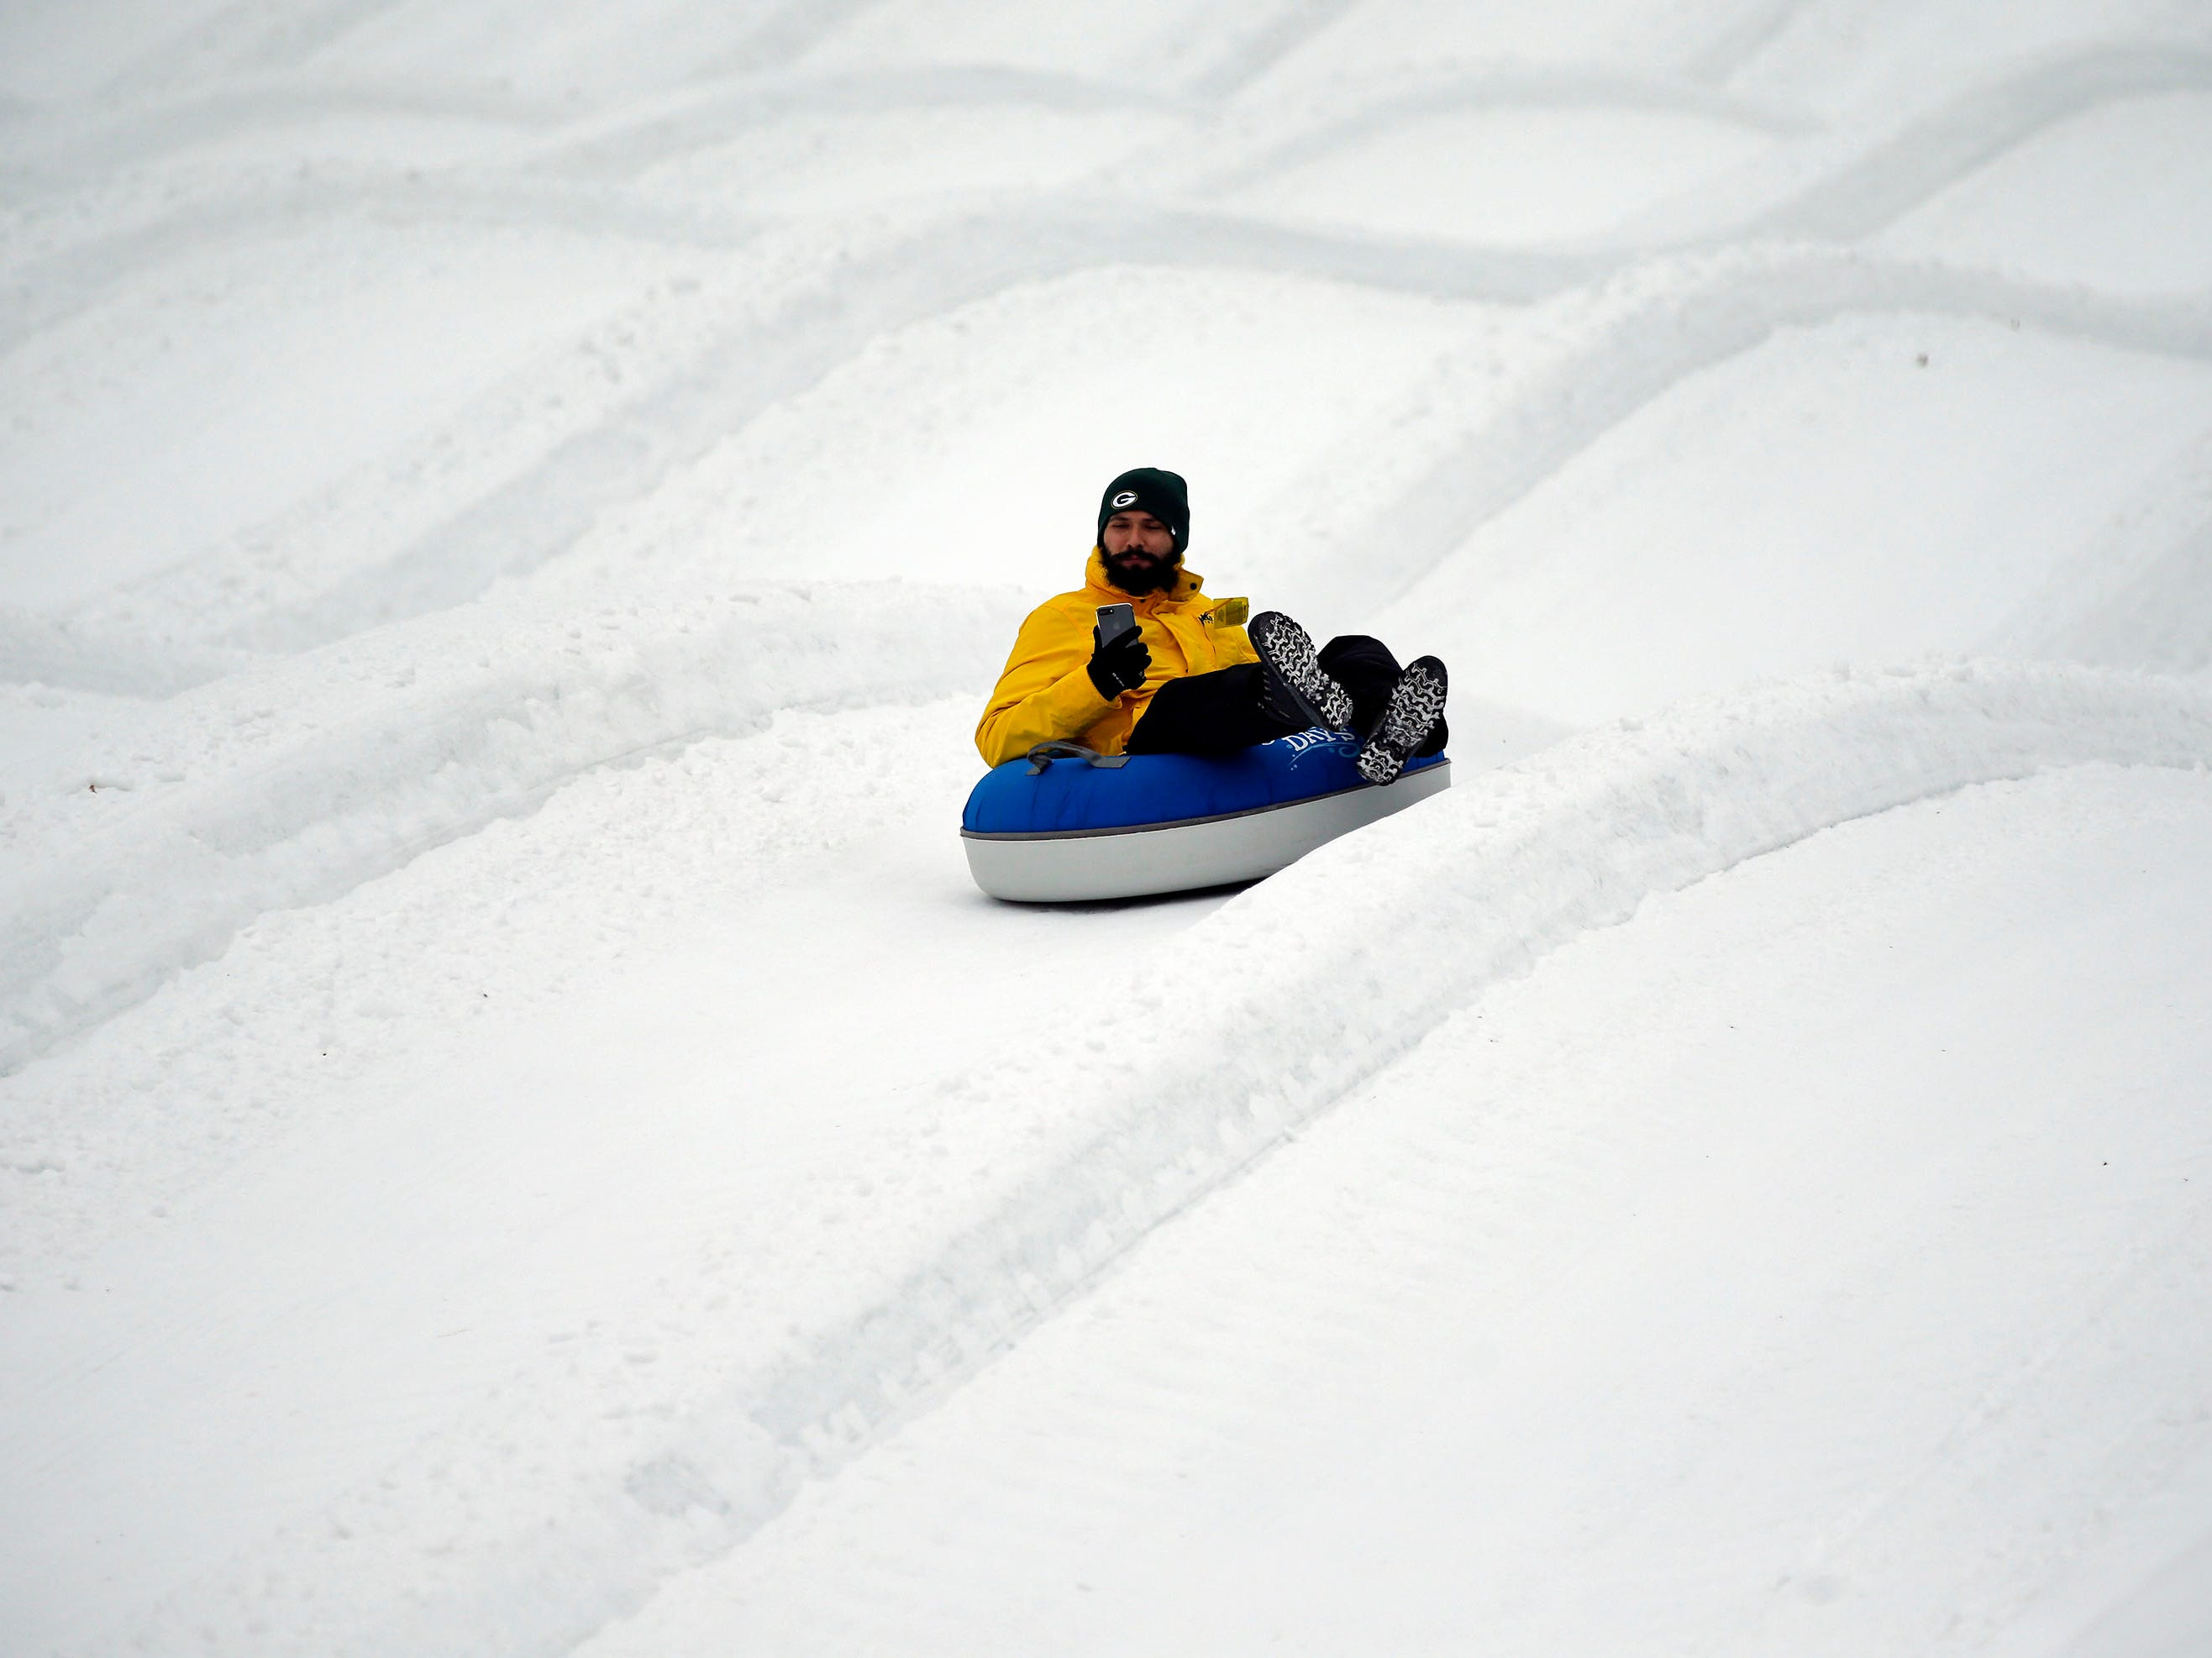 Andre Shartener records his ride as a mild winter day brings tubing fans to Nordic Mountain Sunday, January 13, 2019, near Wild Rose, Wis.